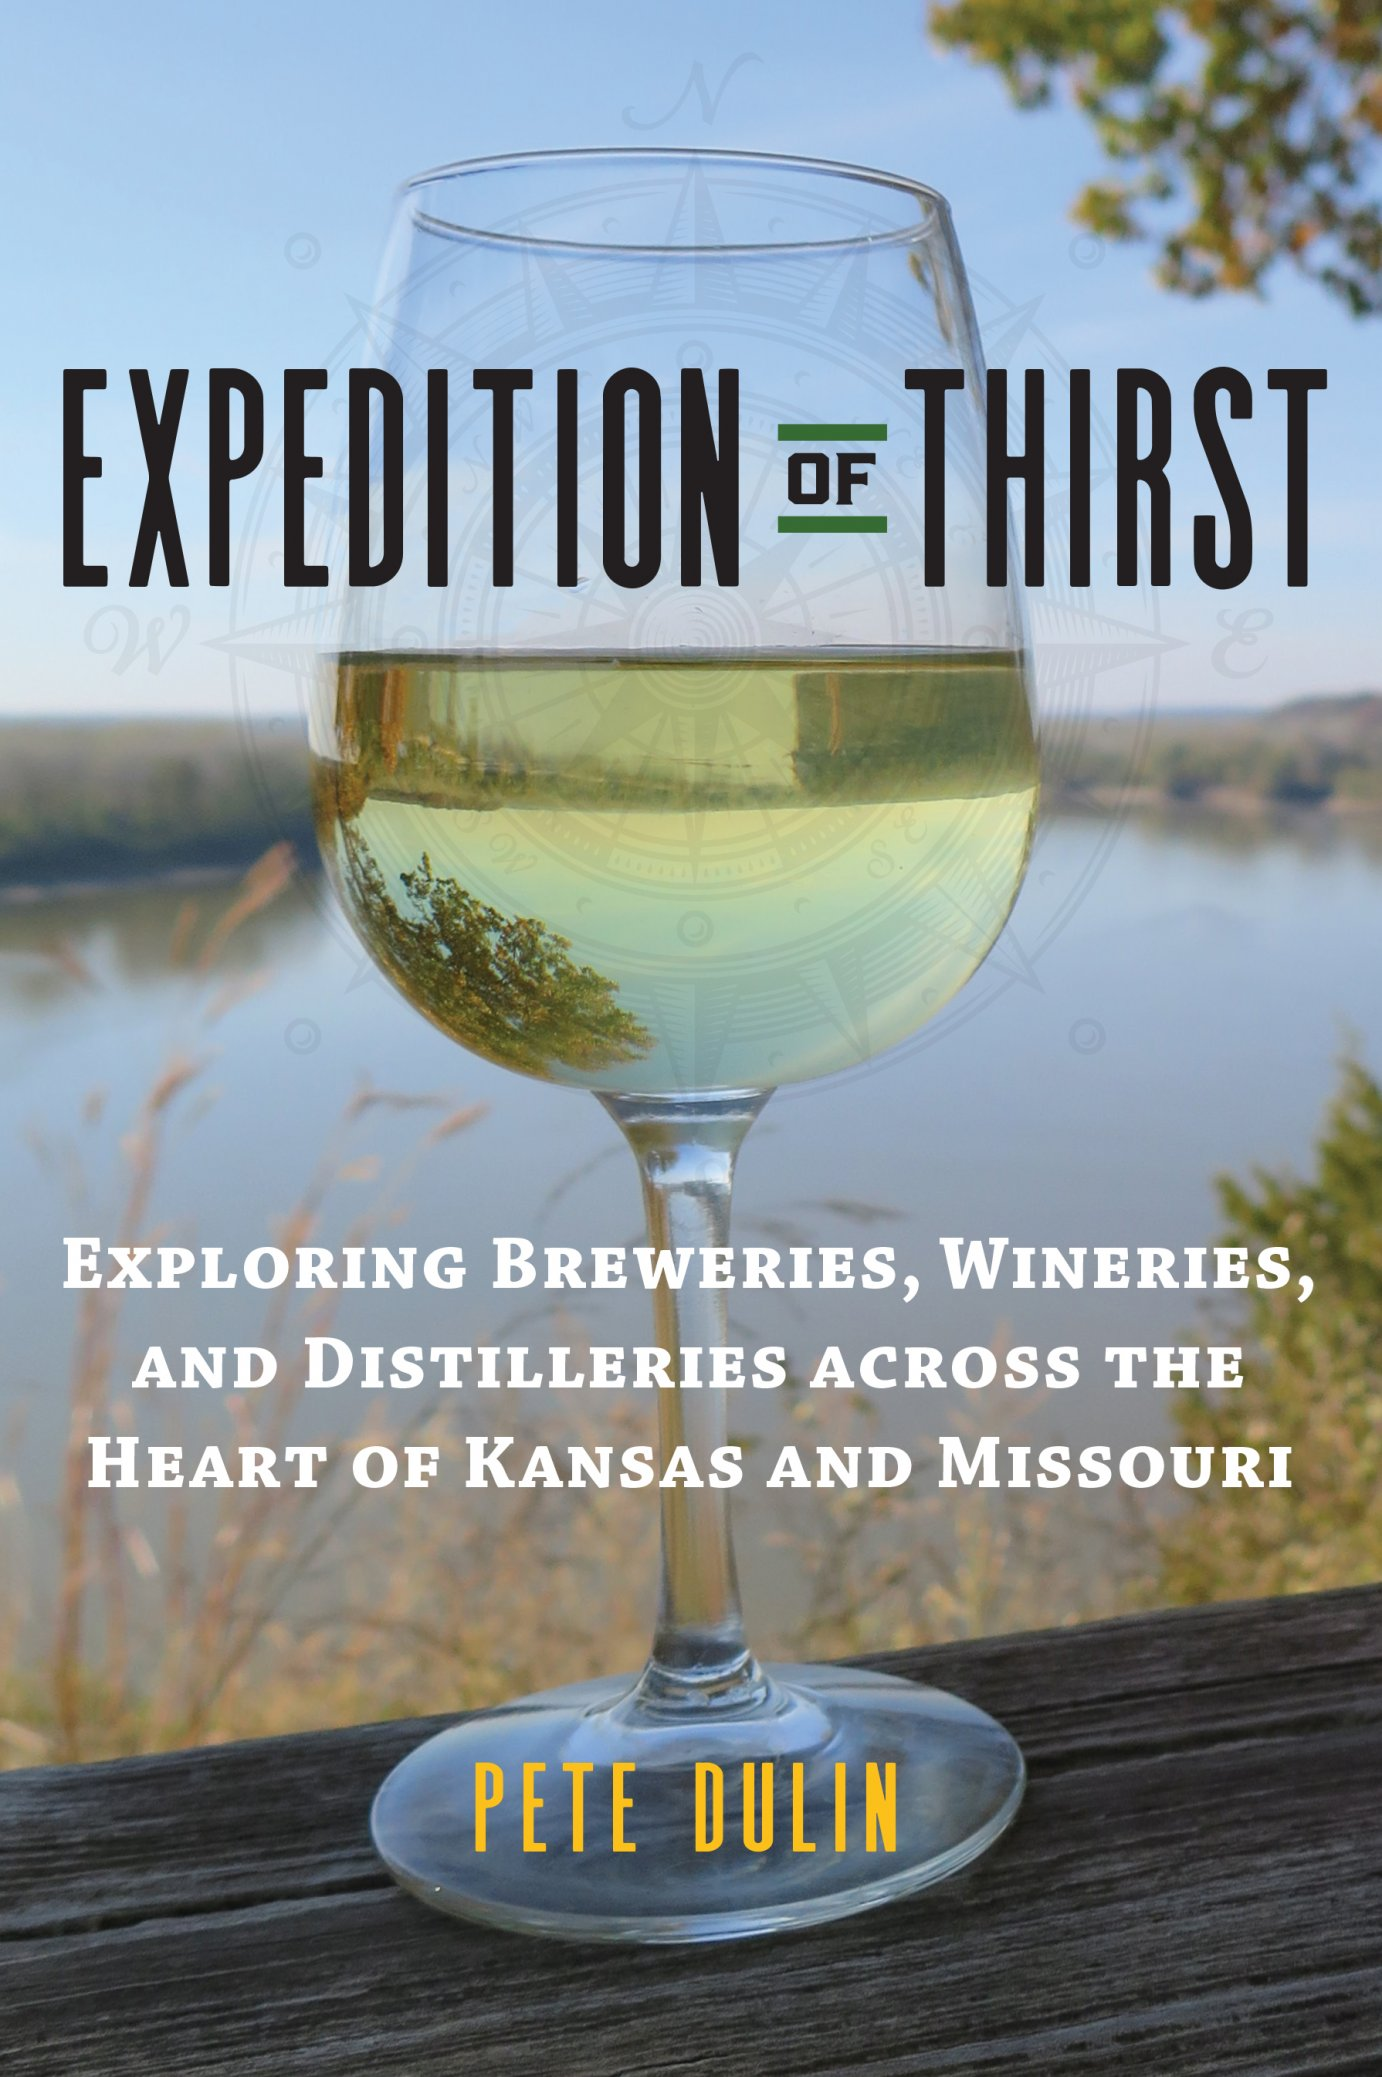 Kansas City author Pete Dulin's book covers more than 150 breweries, wineries and distilleries in Kansas and western Missouri. (University Press of Kansas)